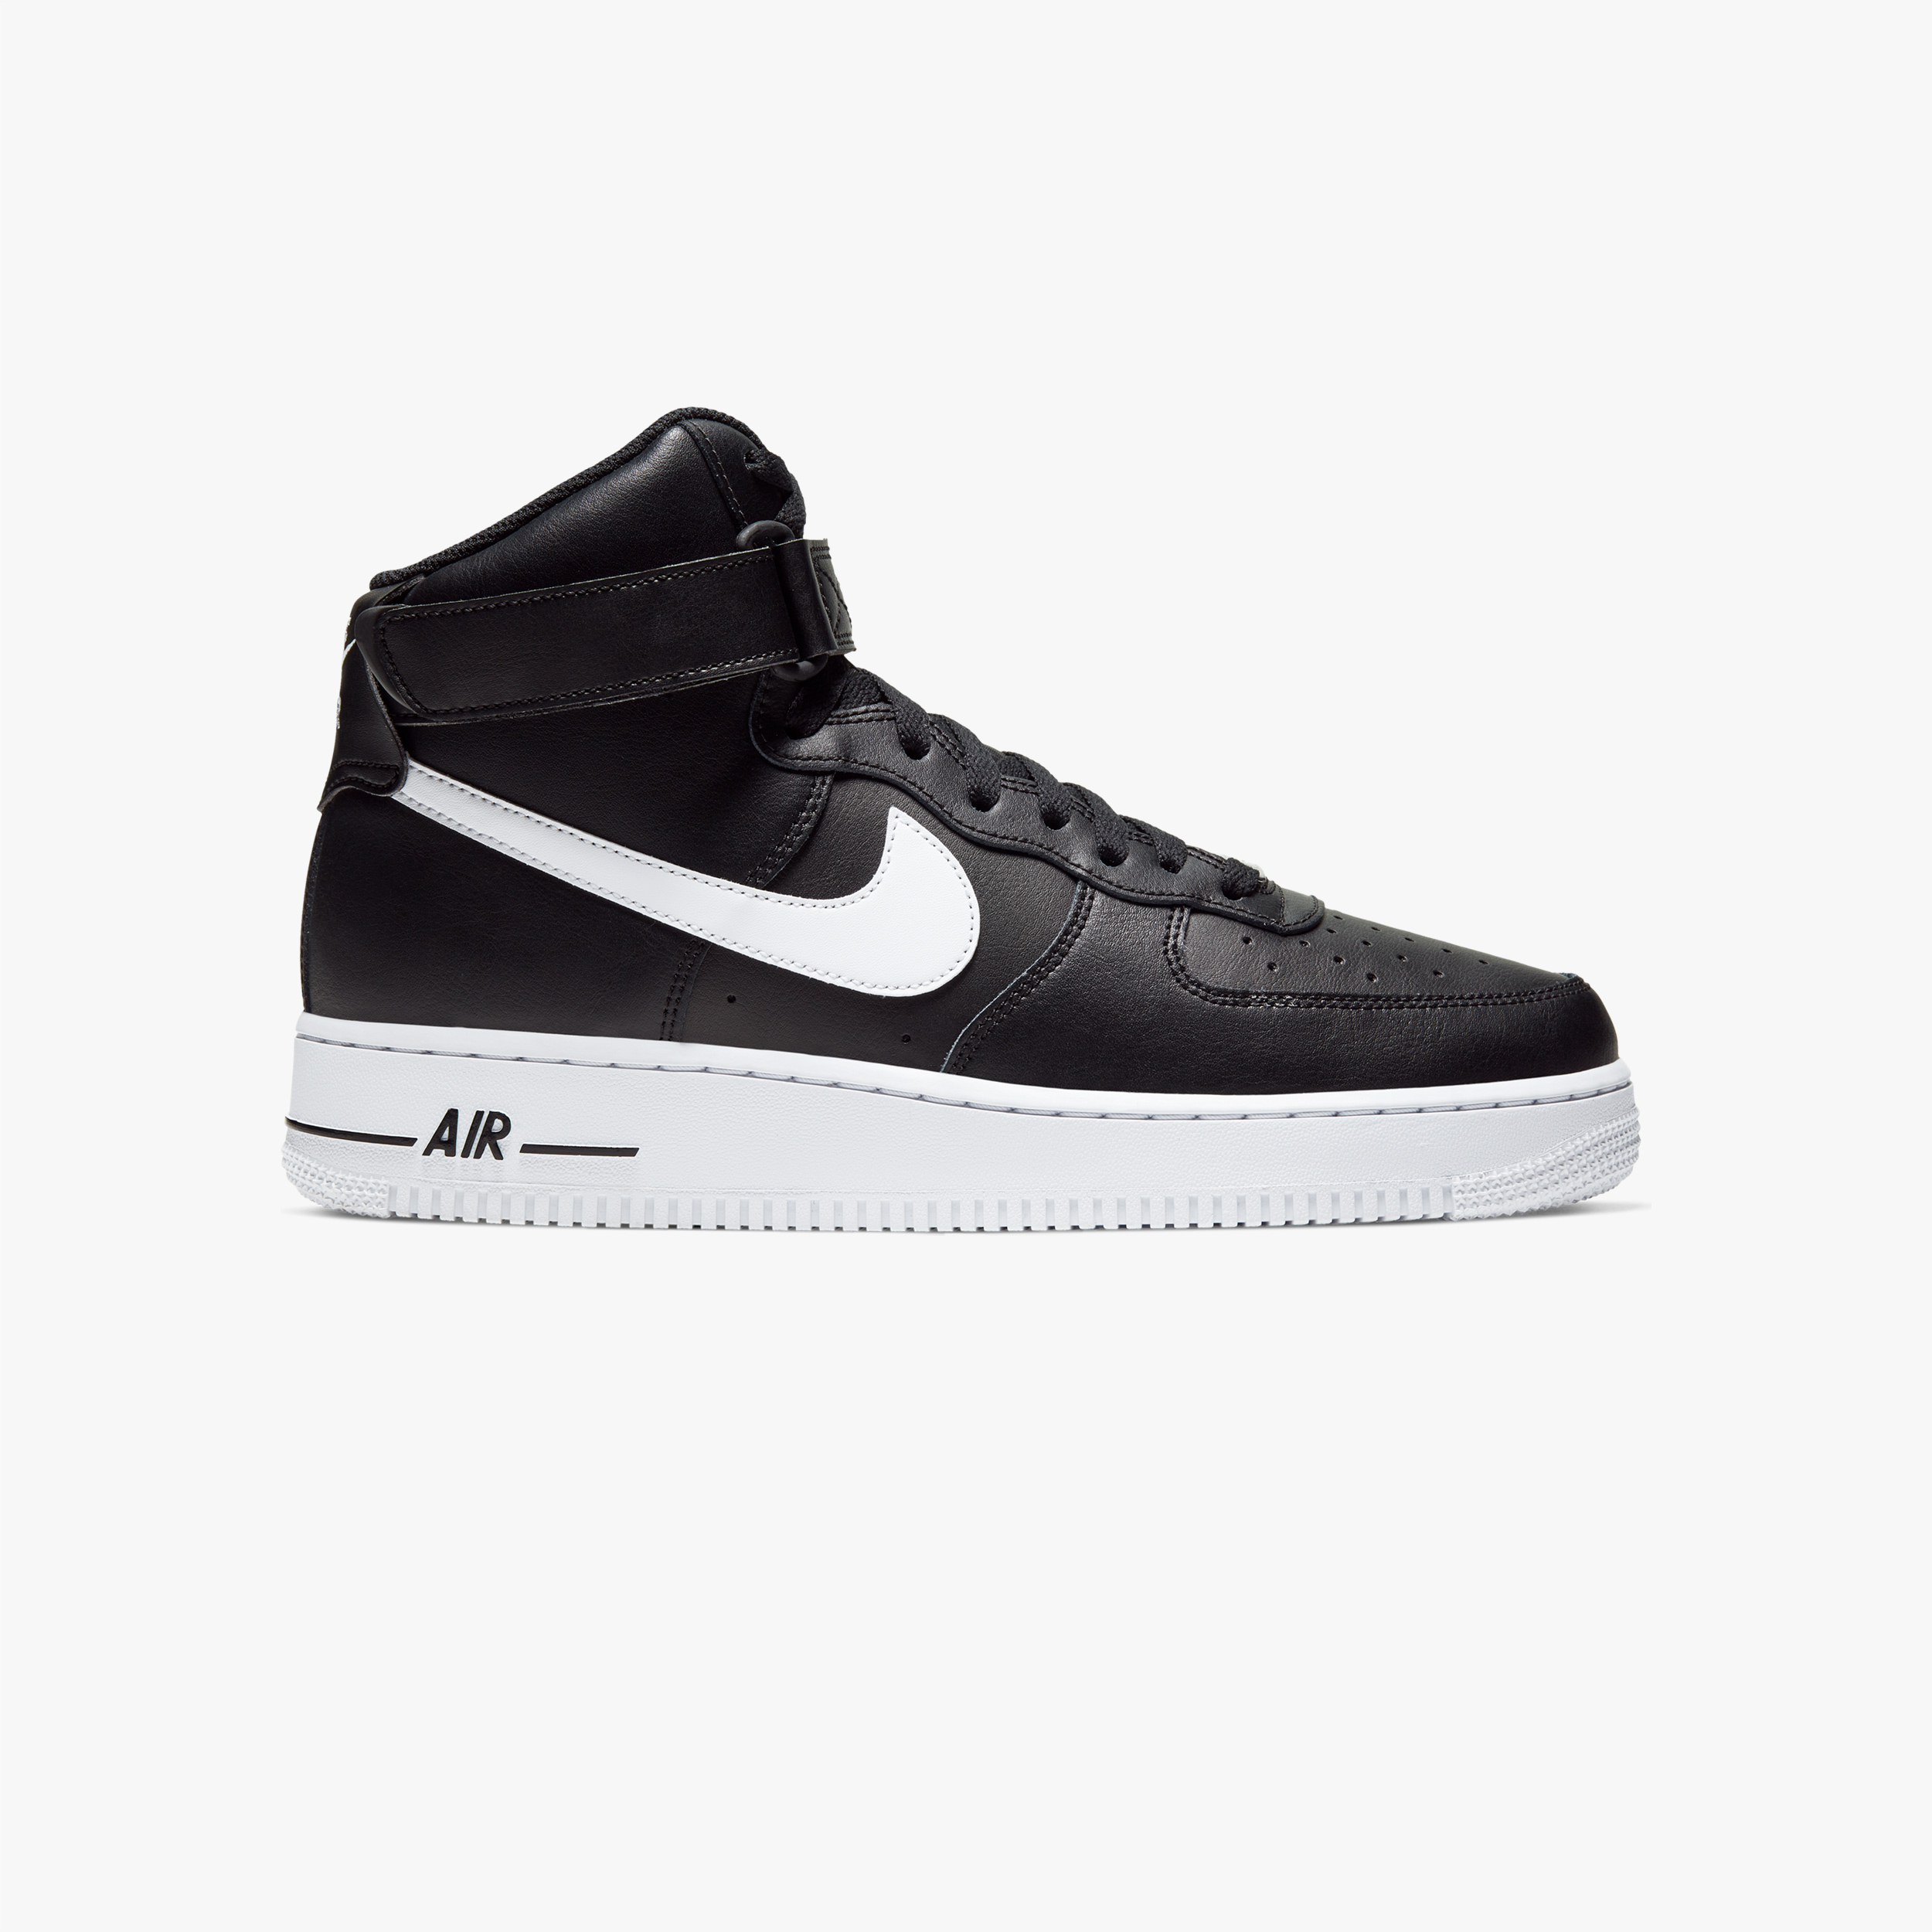 Nike Air Force 1 High 07 Ck4369 001 Sneakersnstuff